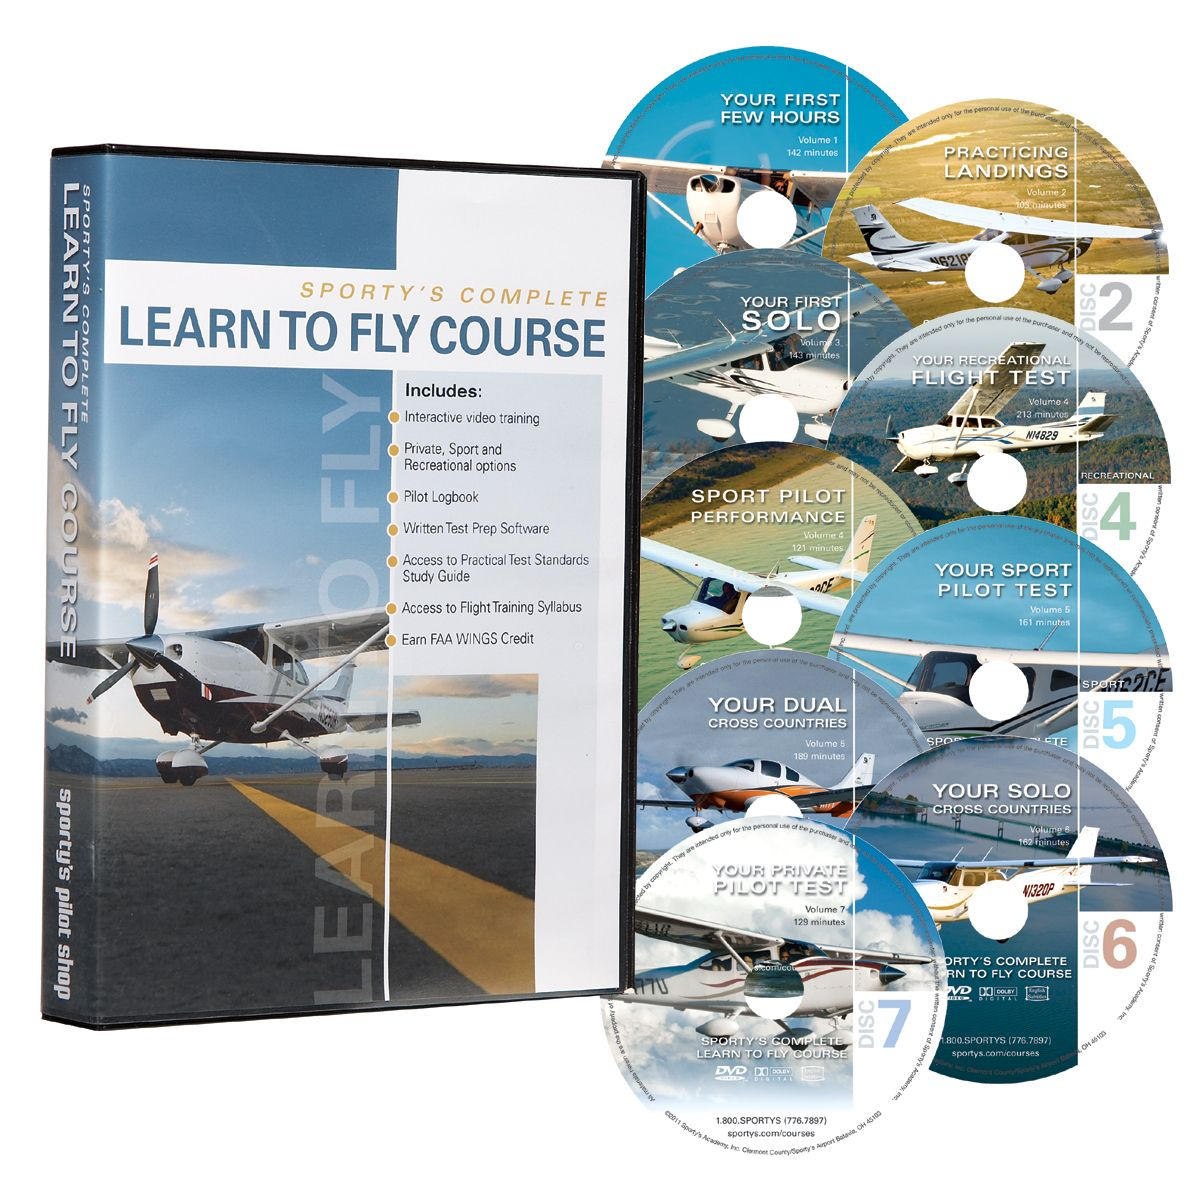 Sporty's Learn to Fly Course Private pilot, Learn to fly